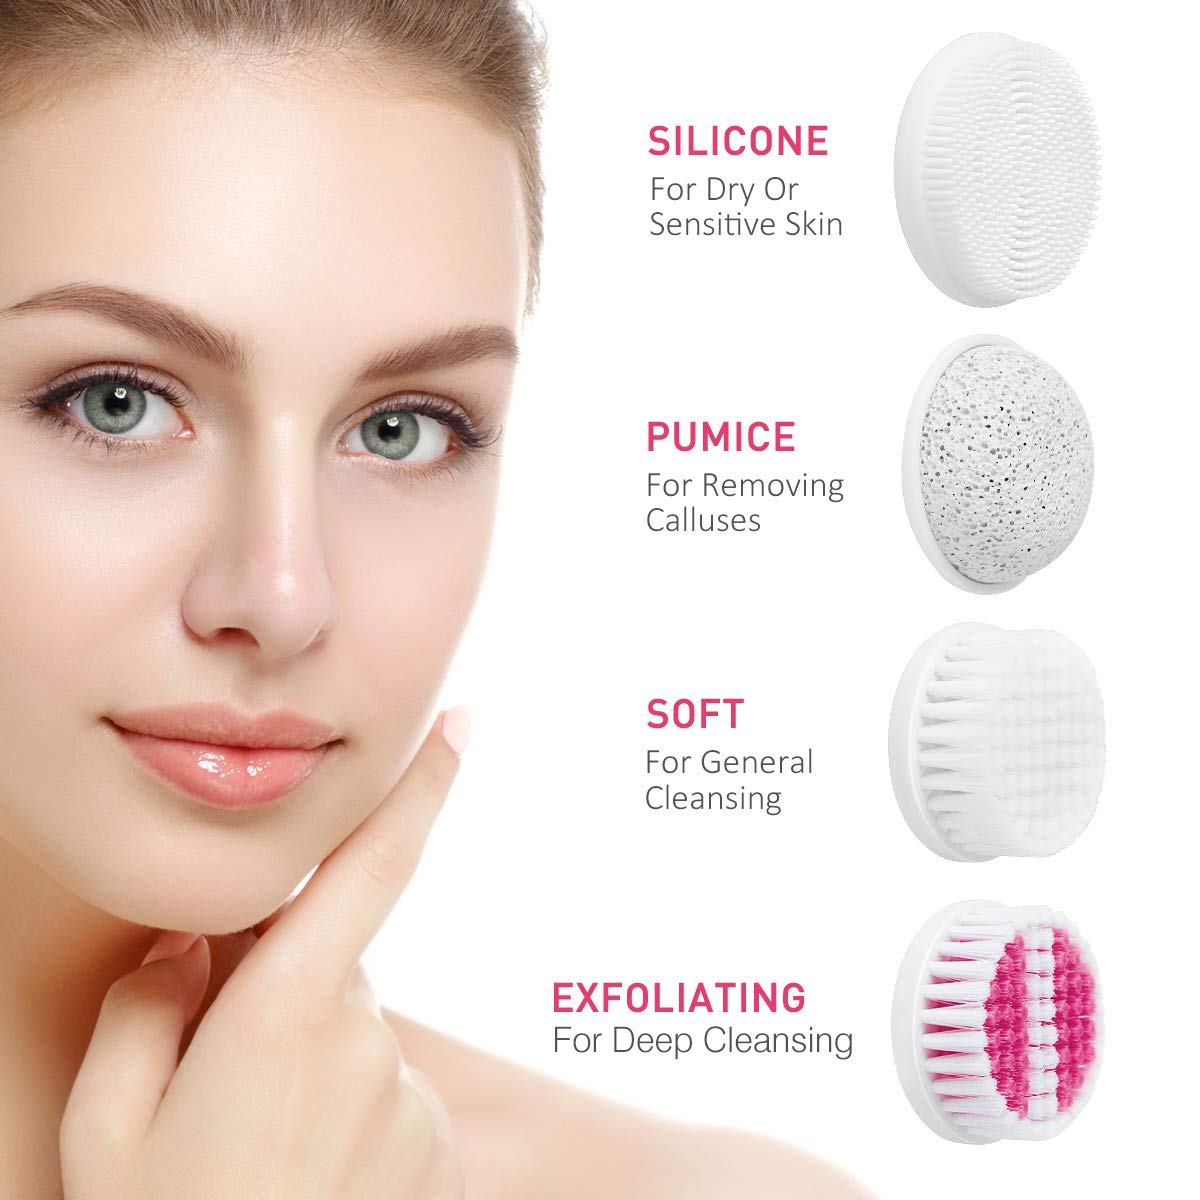 Facial Cleansing Brush, 4-In-1 Facial Brush Waterproof Spin Brush - Pink